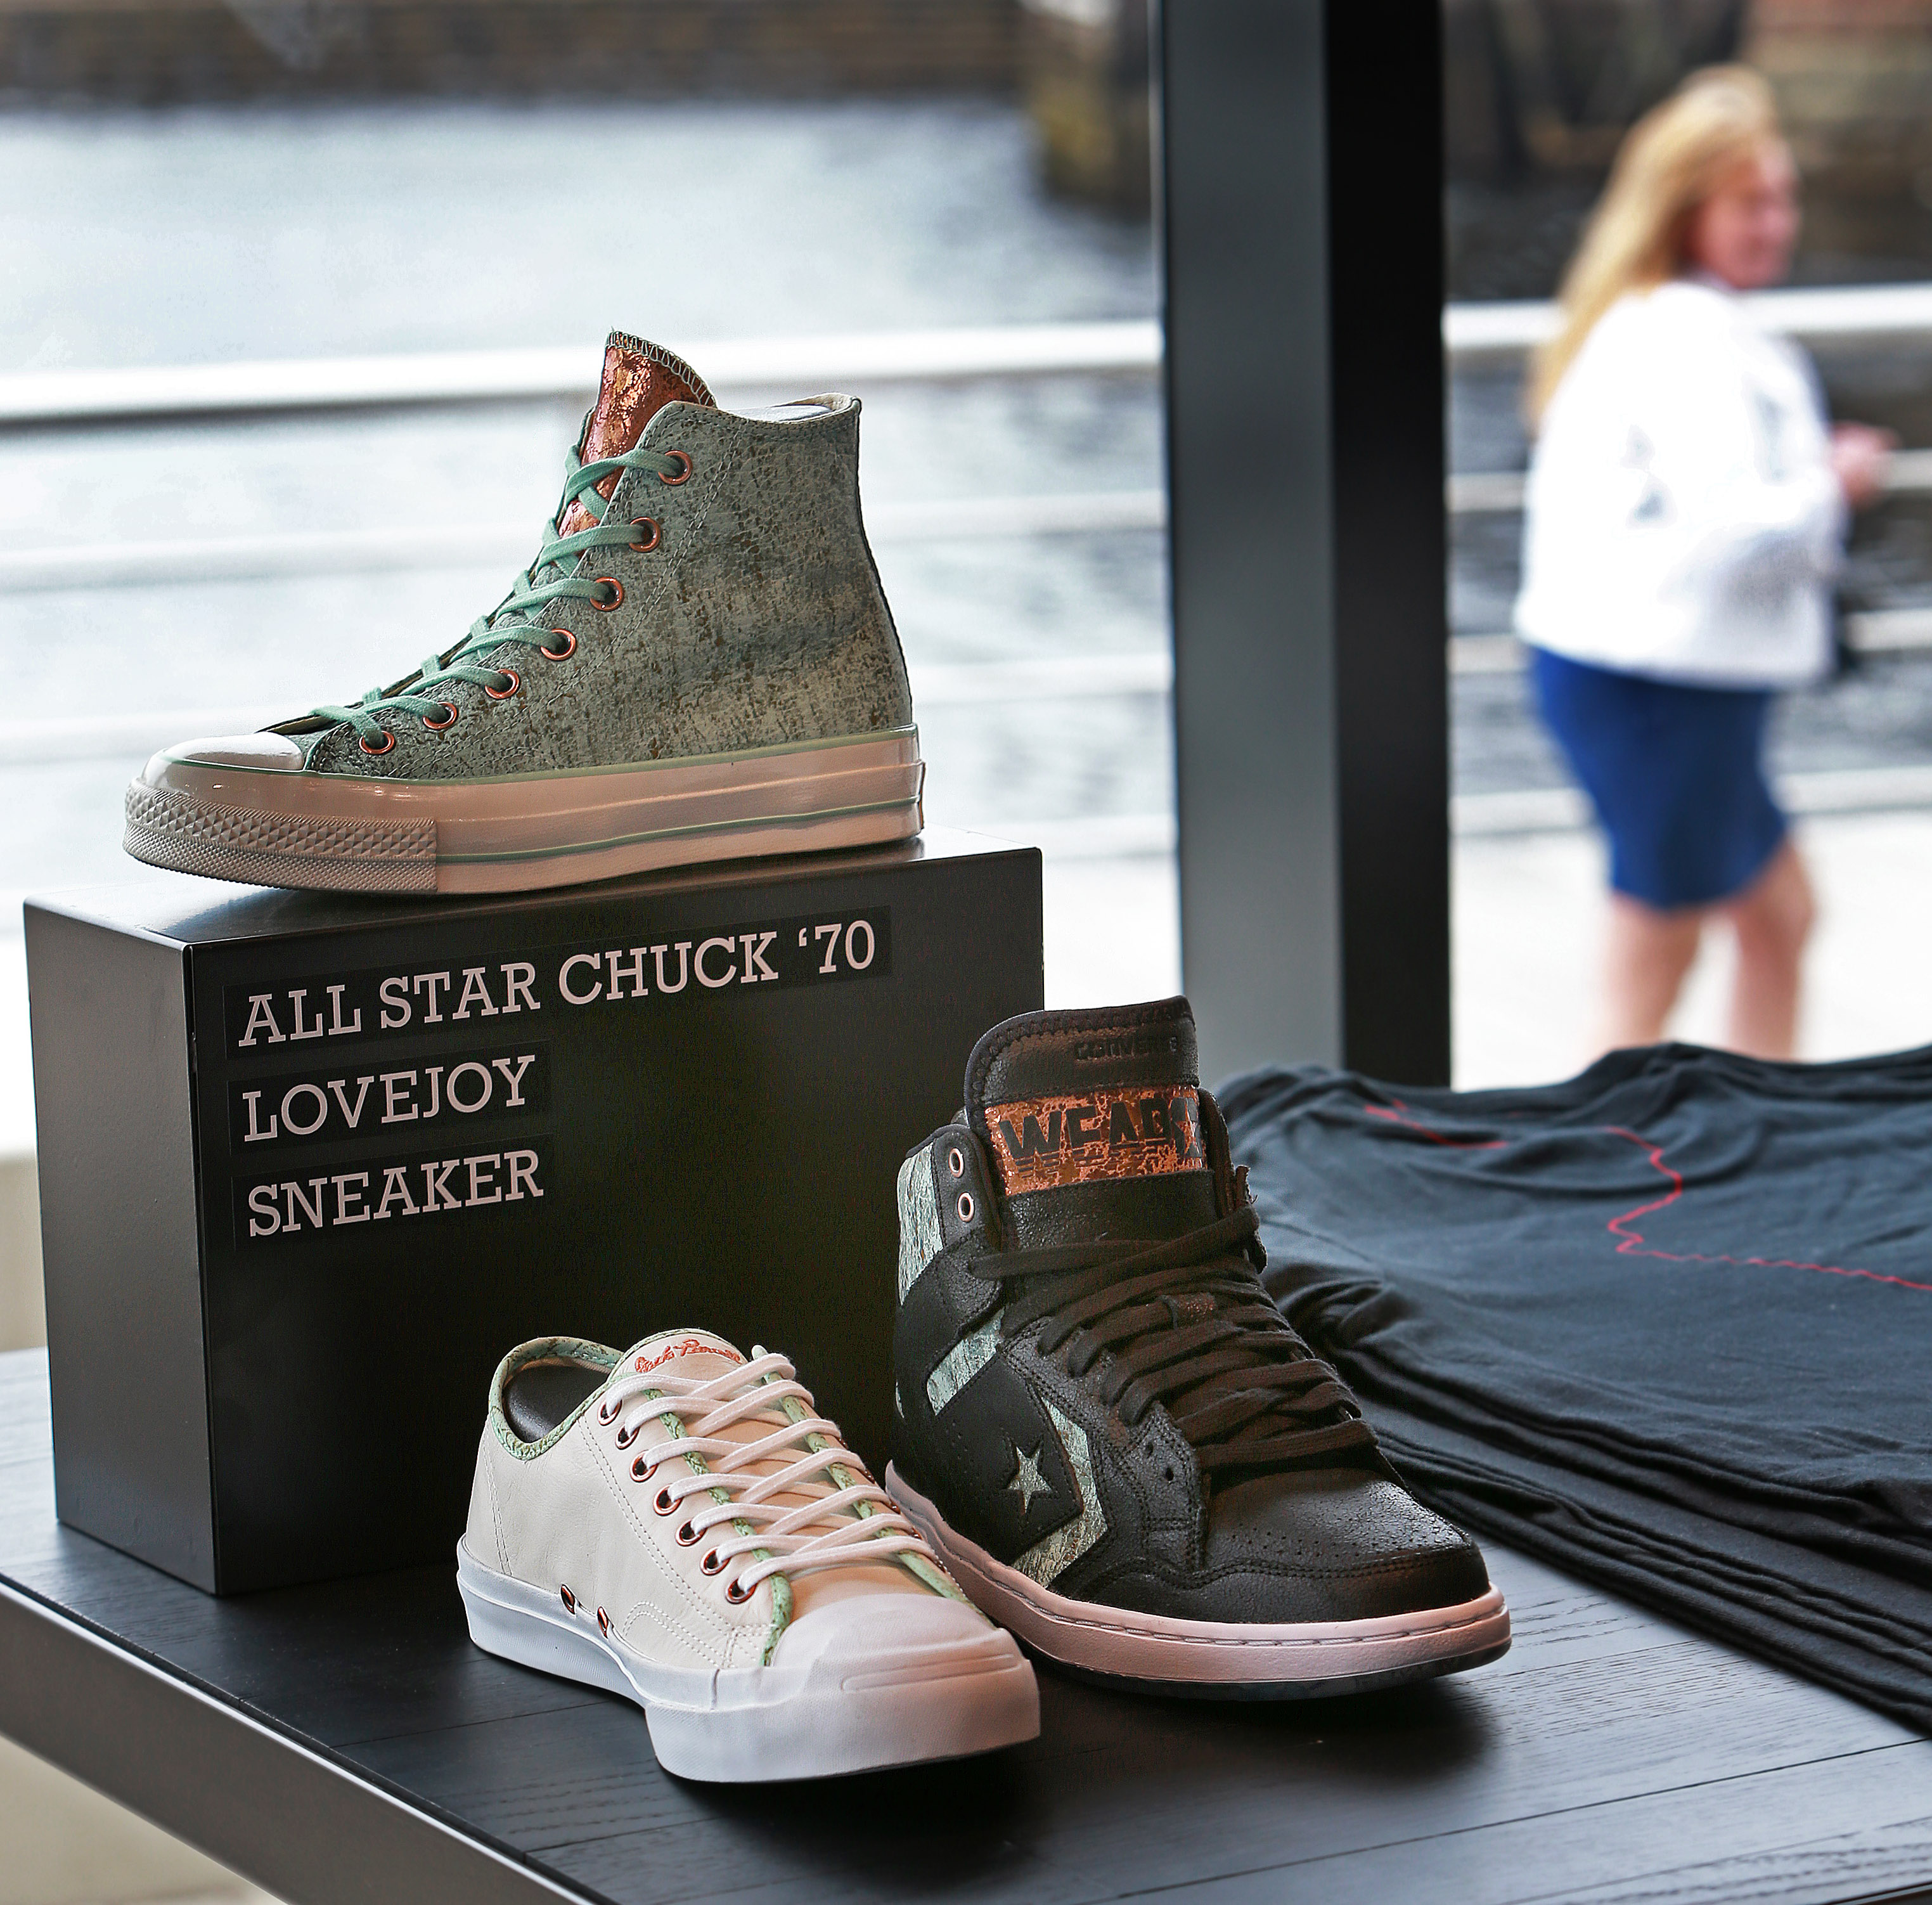 de5c67af5fd759 Converse and its iconic Chuck Taylors find a home near North Station - The  Boston Globe